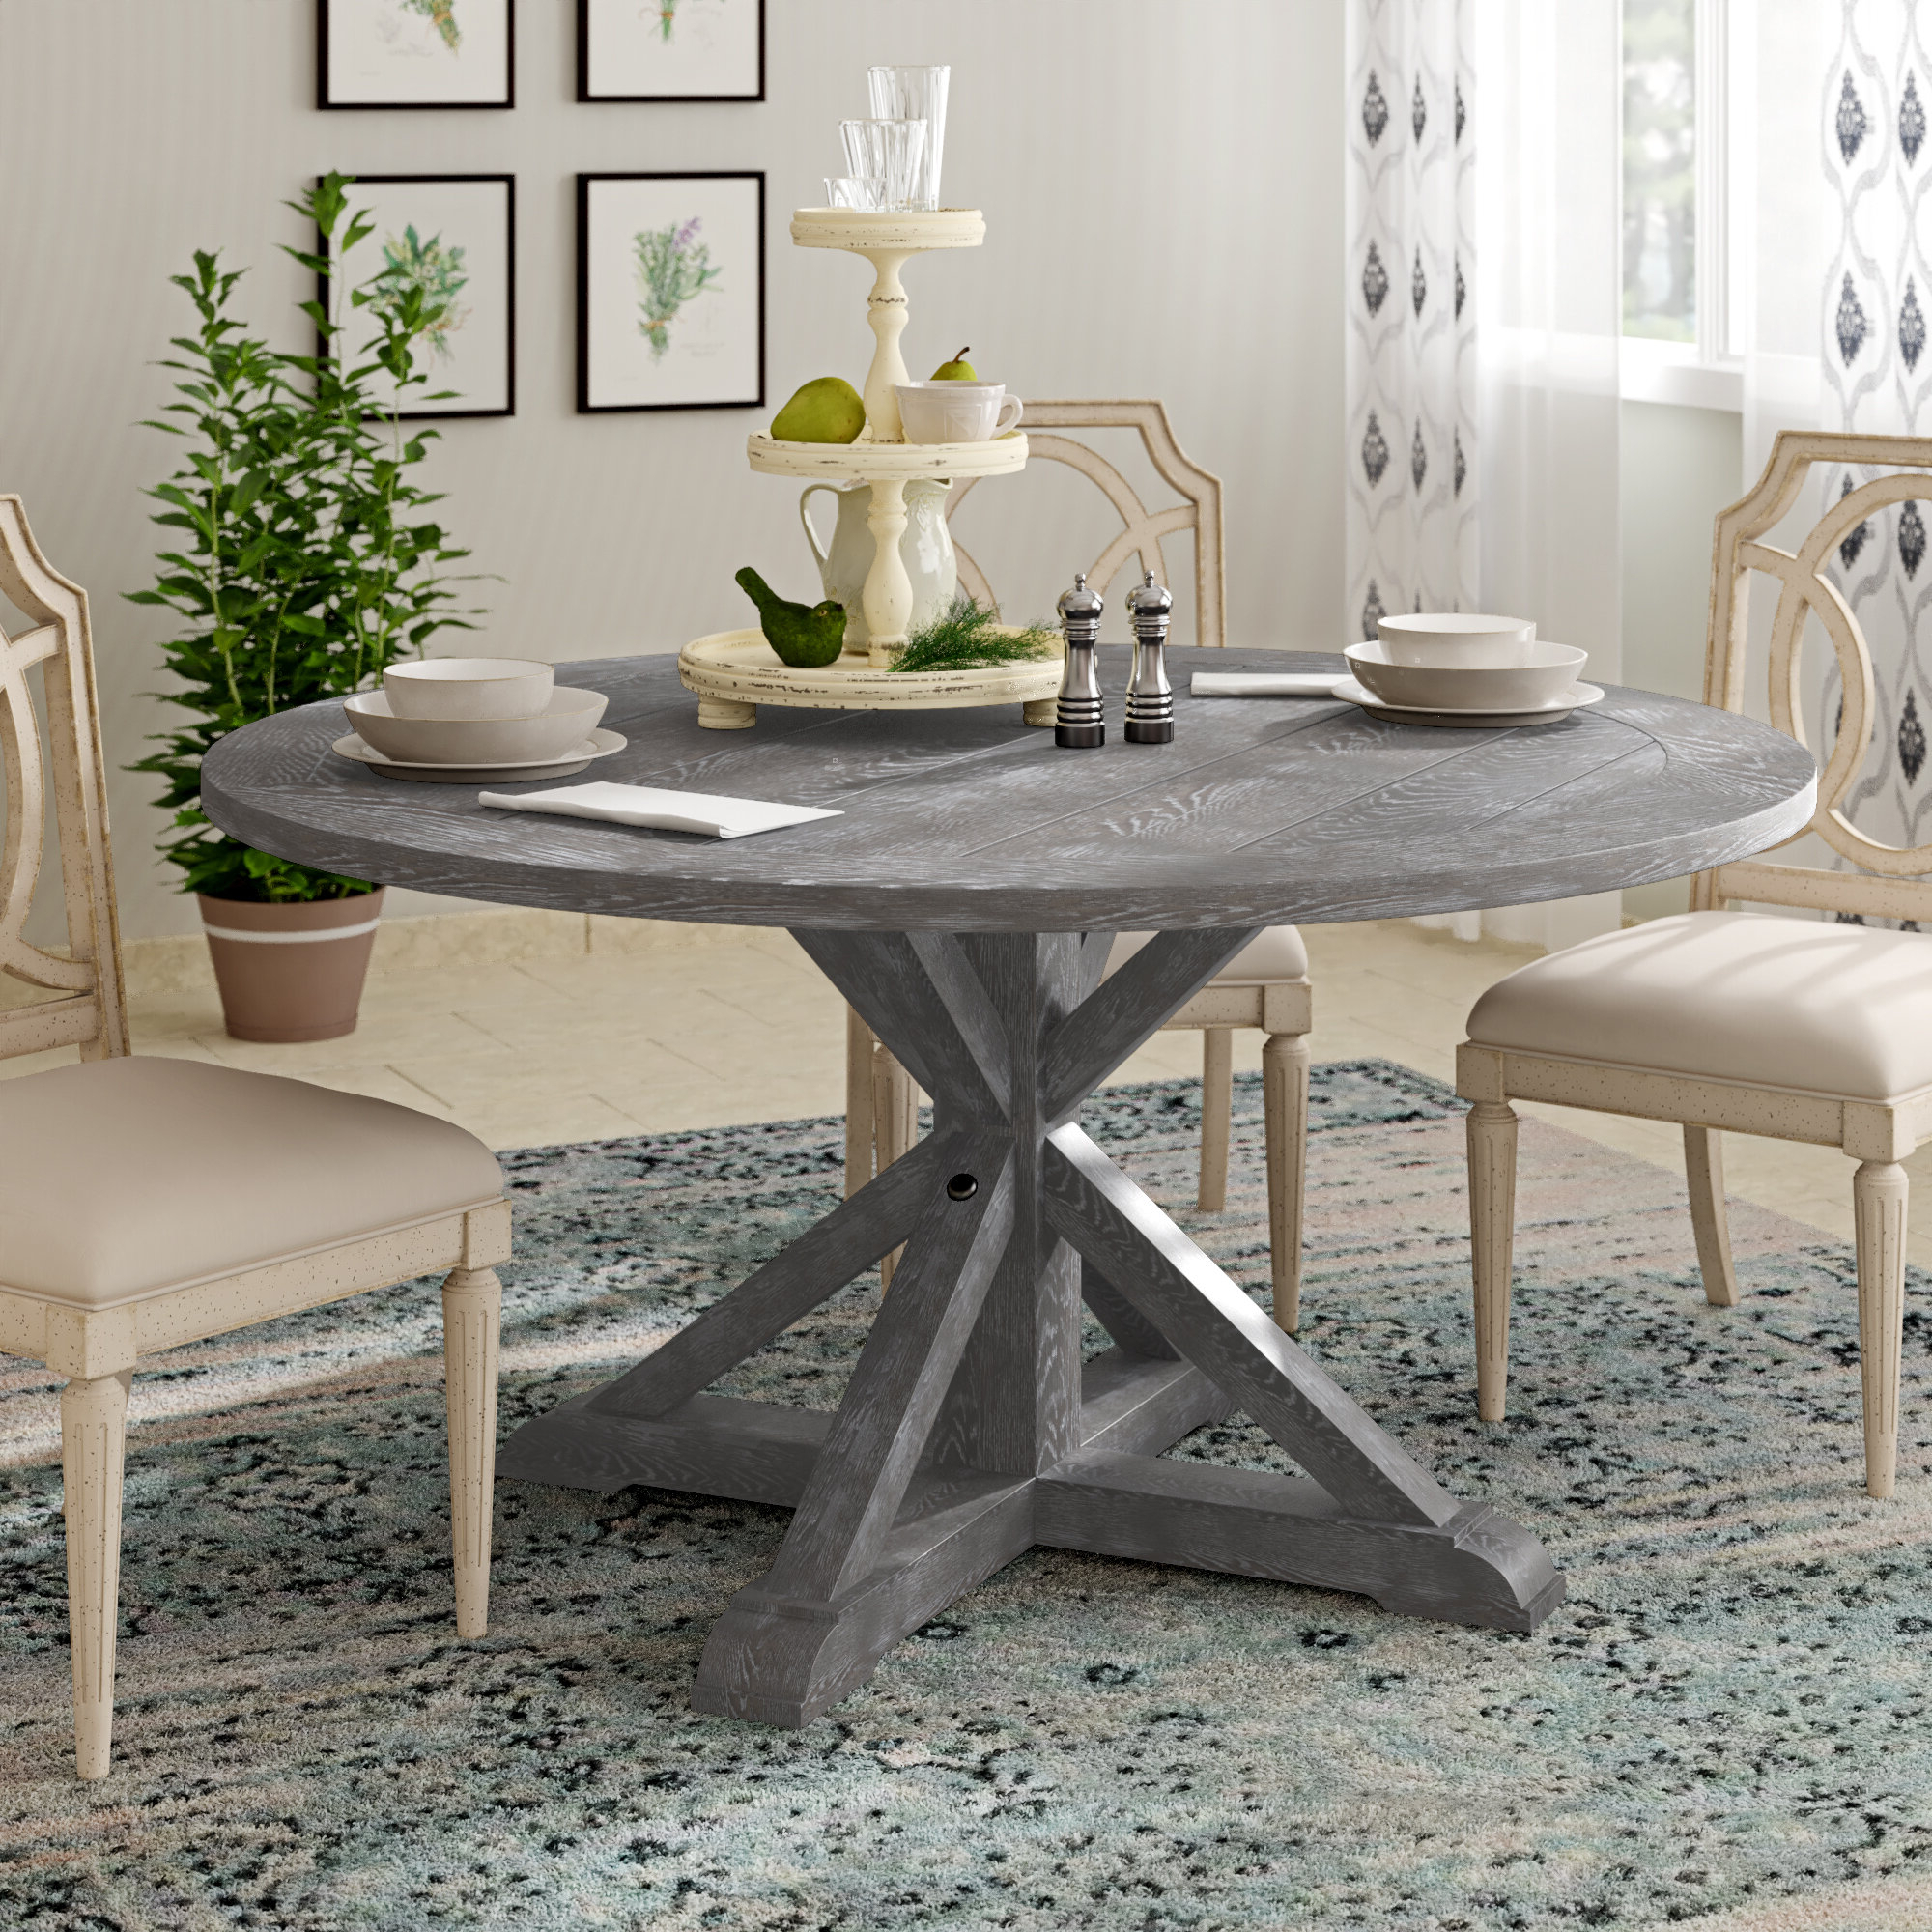 """Charcoal Transitional 6 Seating Rectangular Dining Tables Throughout Favorite Emerald Home Paladin Rustic Charcoal Grey 60"""" Round Dining Table With 60""""  Top And Farmhouse Trestle Base (View 8 of 30)"""